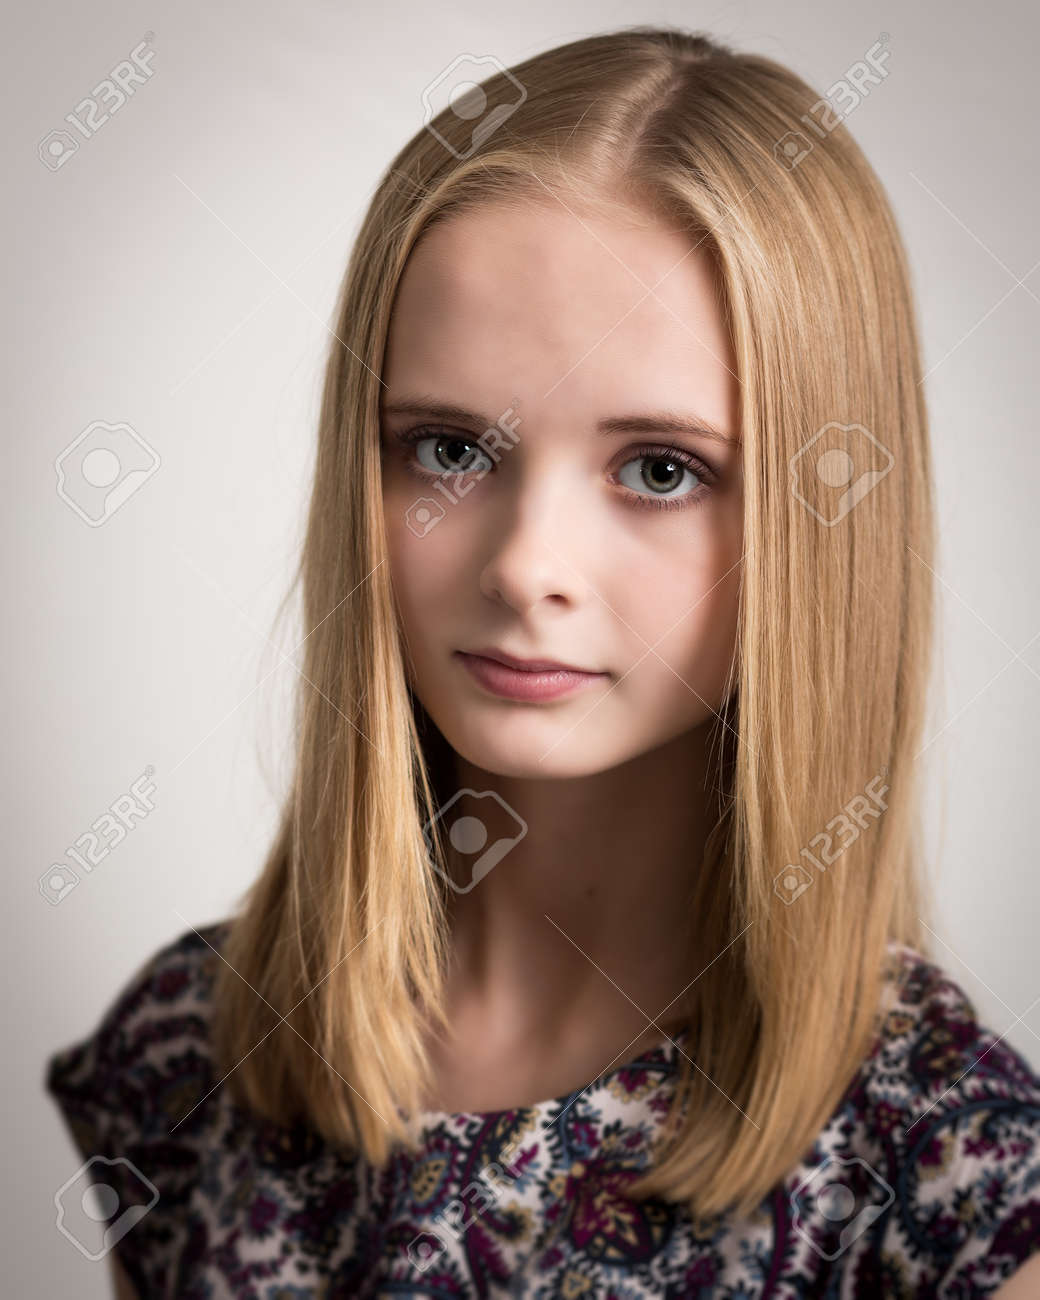 Portrait Of A Beautiful Young Teenage Girl With Long Blond Hair